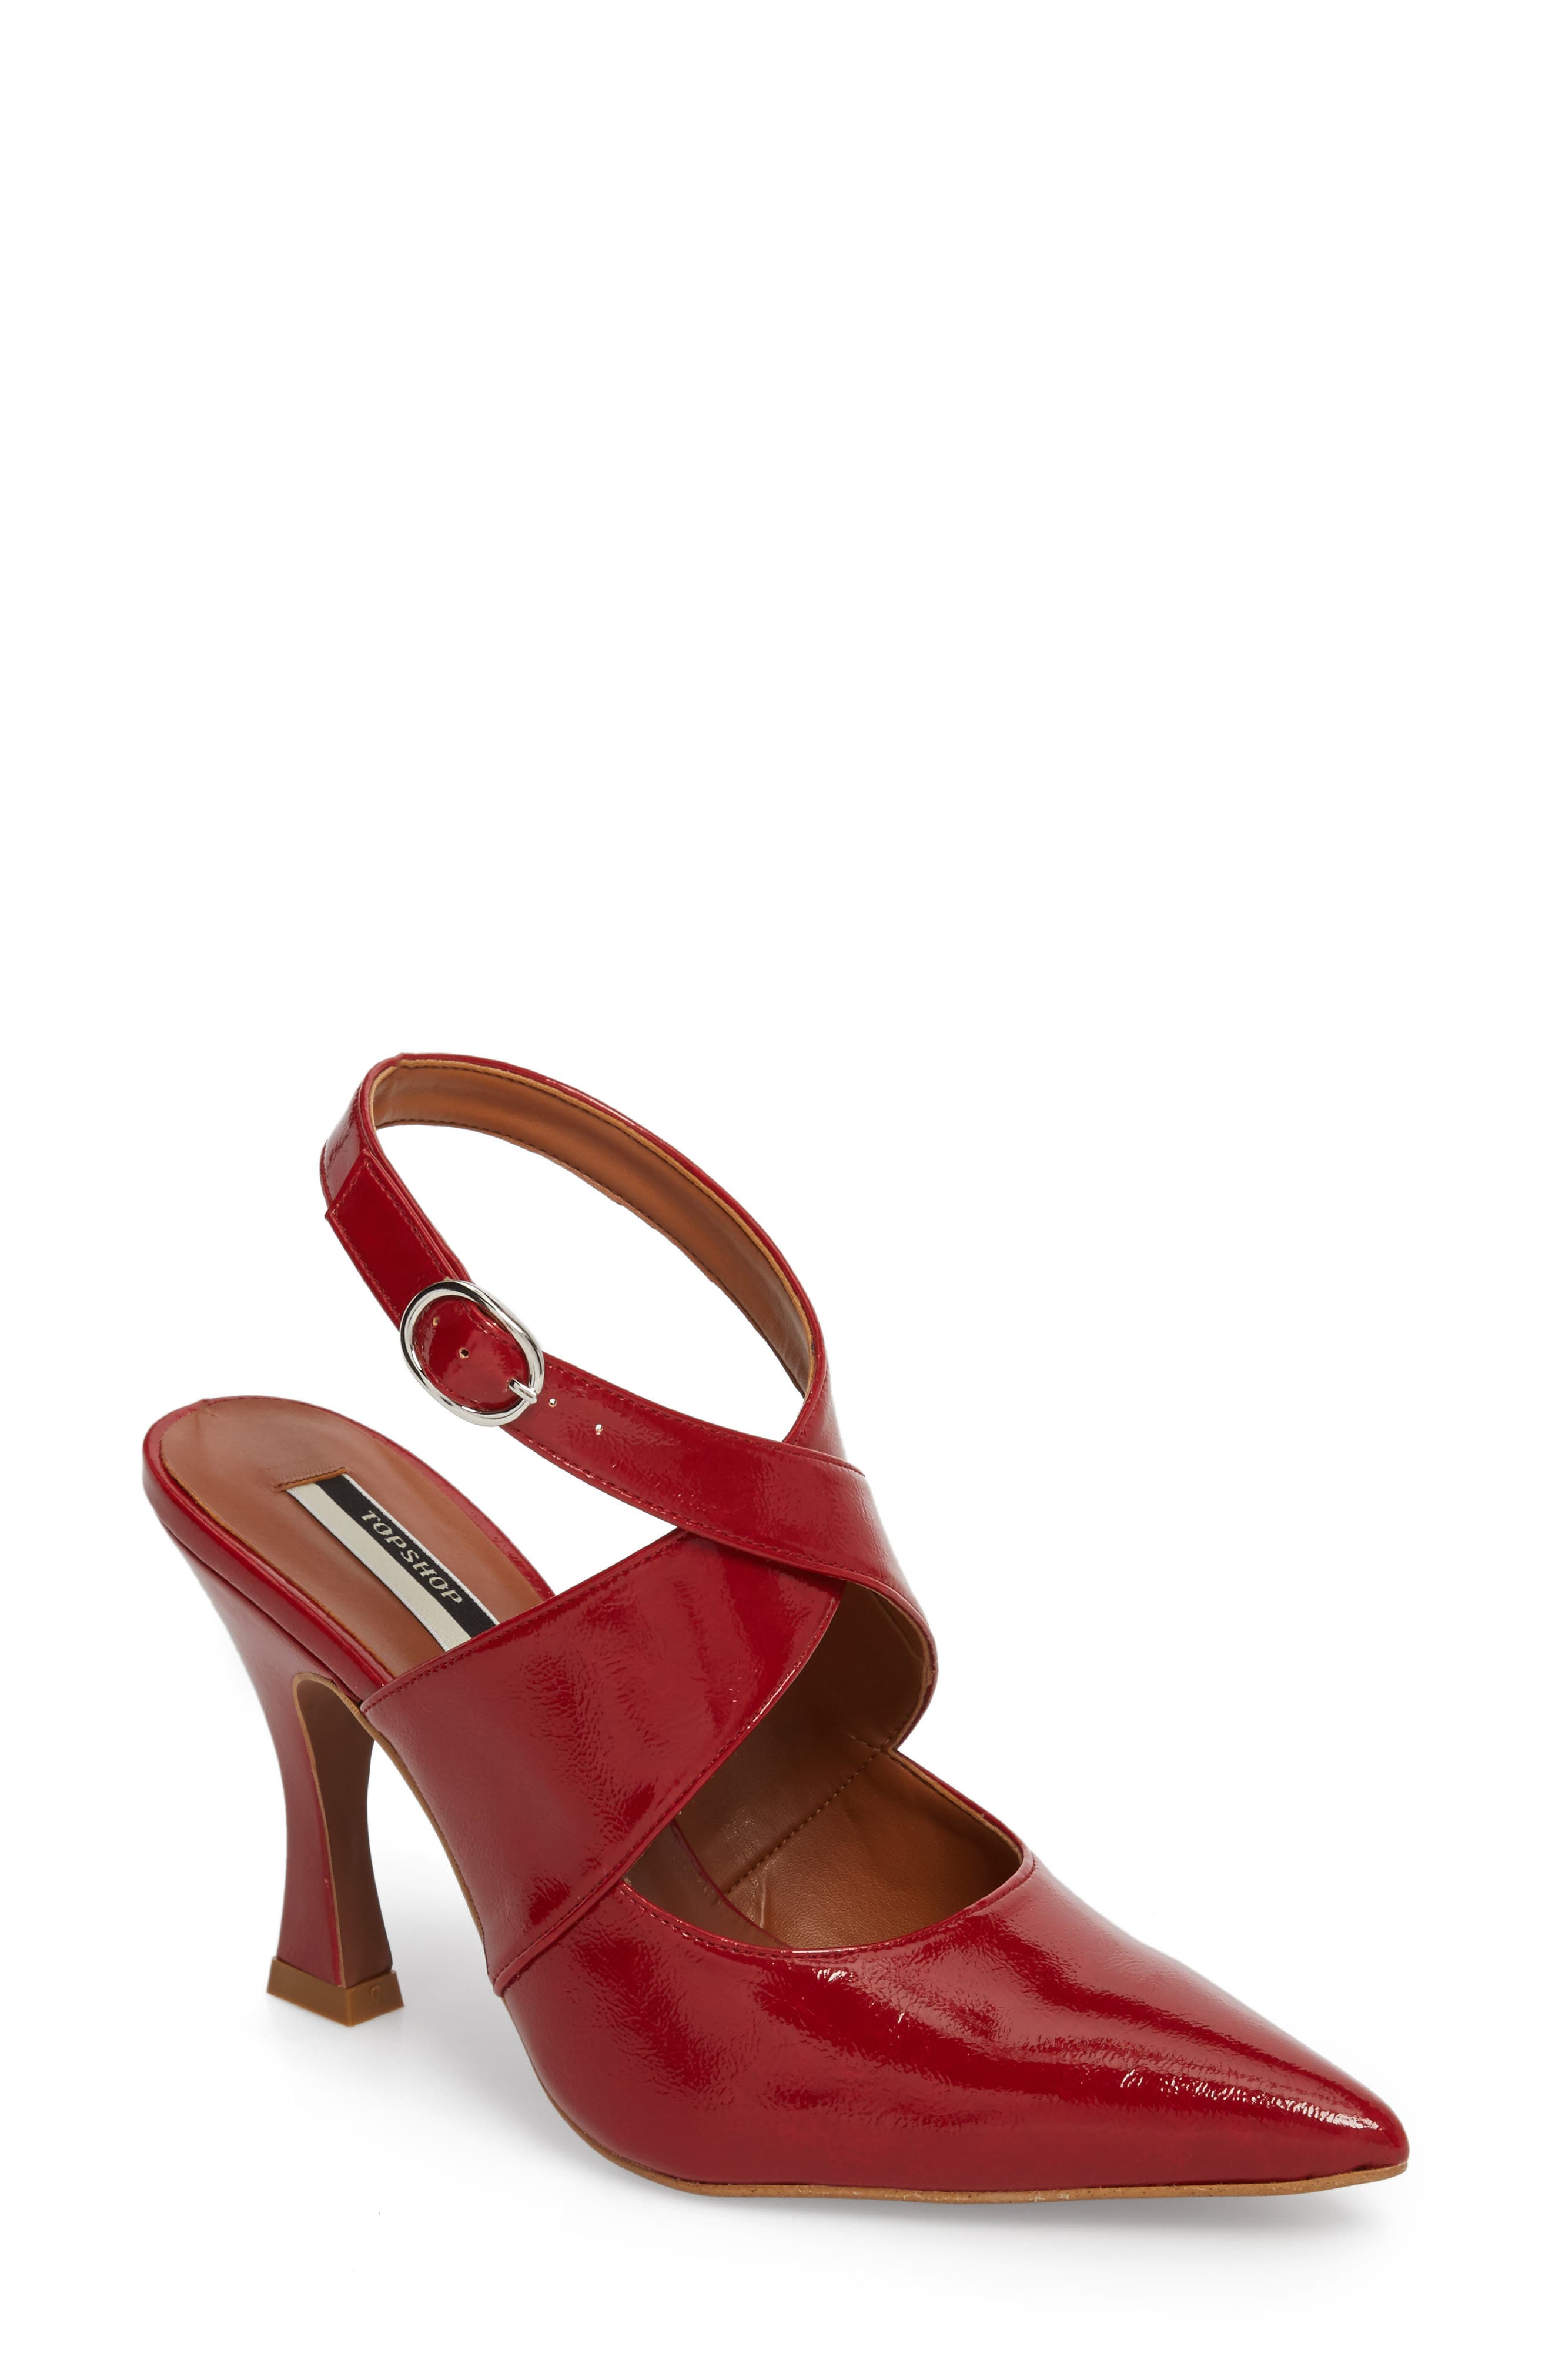 Galactic Pointy Toe Pump,                         Main,                         color, Red